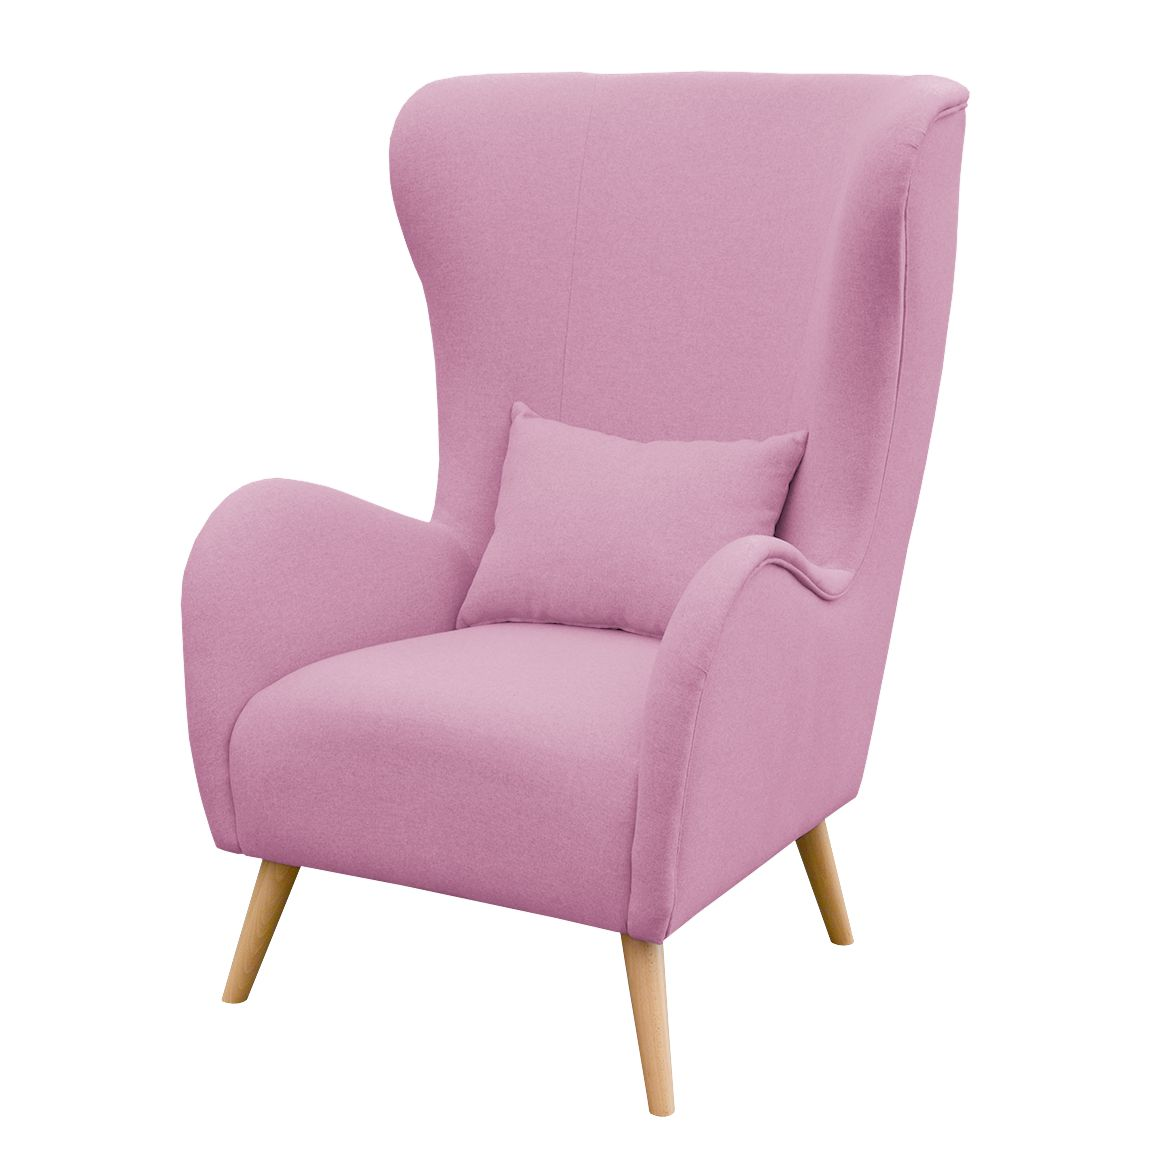 ohrensessel madame lebon iii webstoff mauve morteens online bestellen. Black Bedroom Furniture Sets. Home Design Ideas